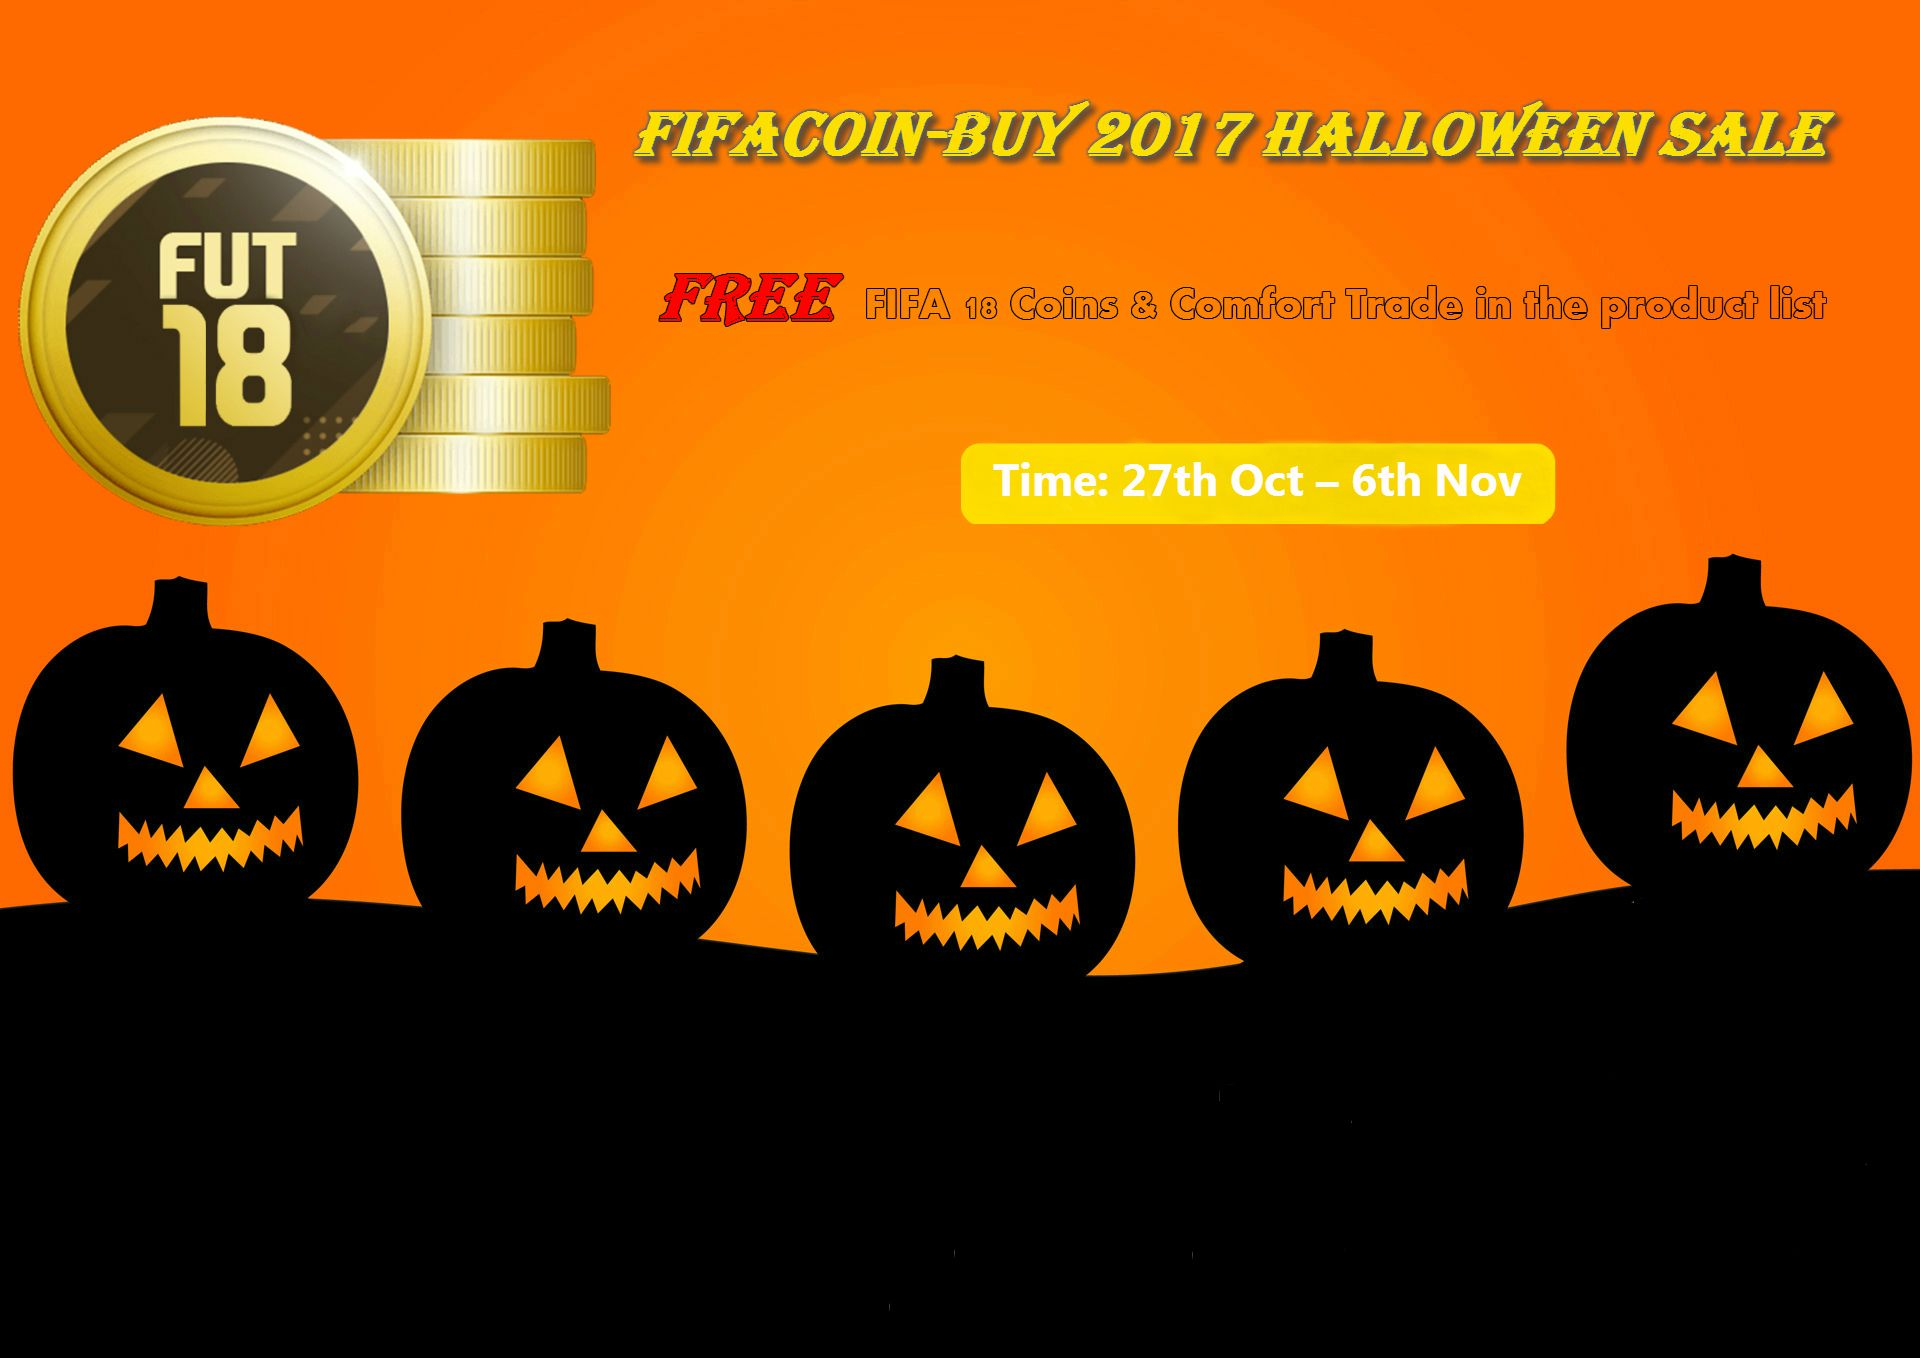 Scream Team Comes Alive Fifa 18 Coins Halloween Sale